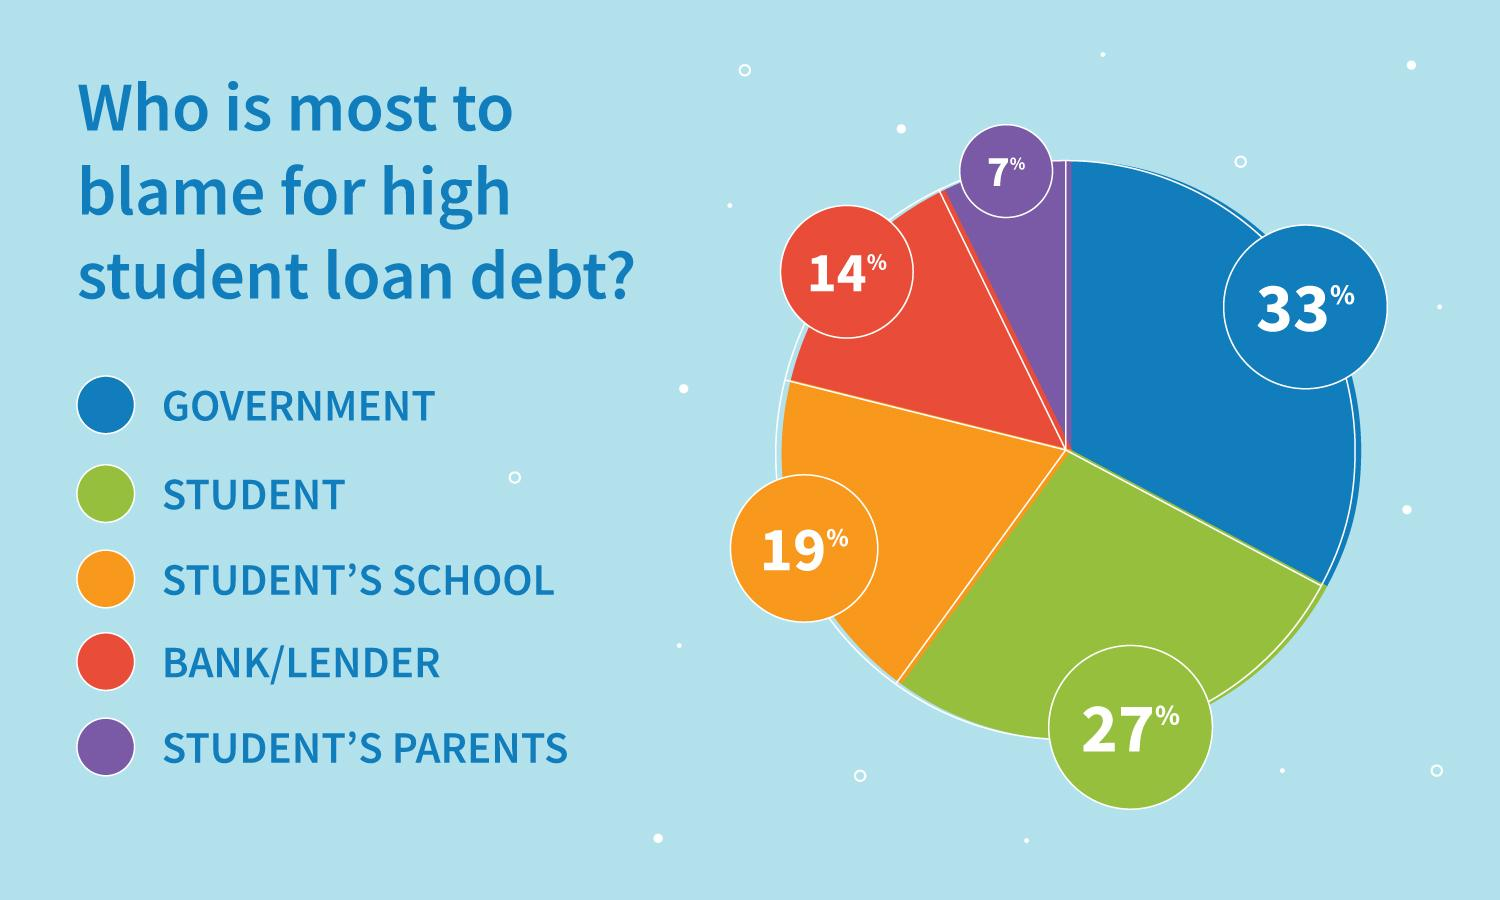 Survey results: who is most to blame for high student loan debt?